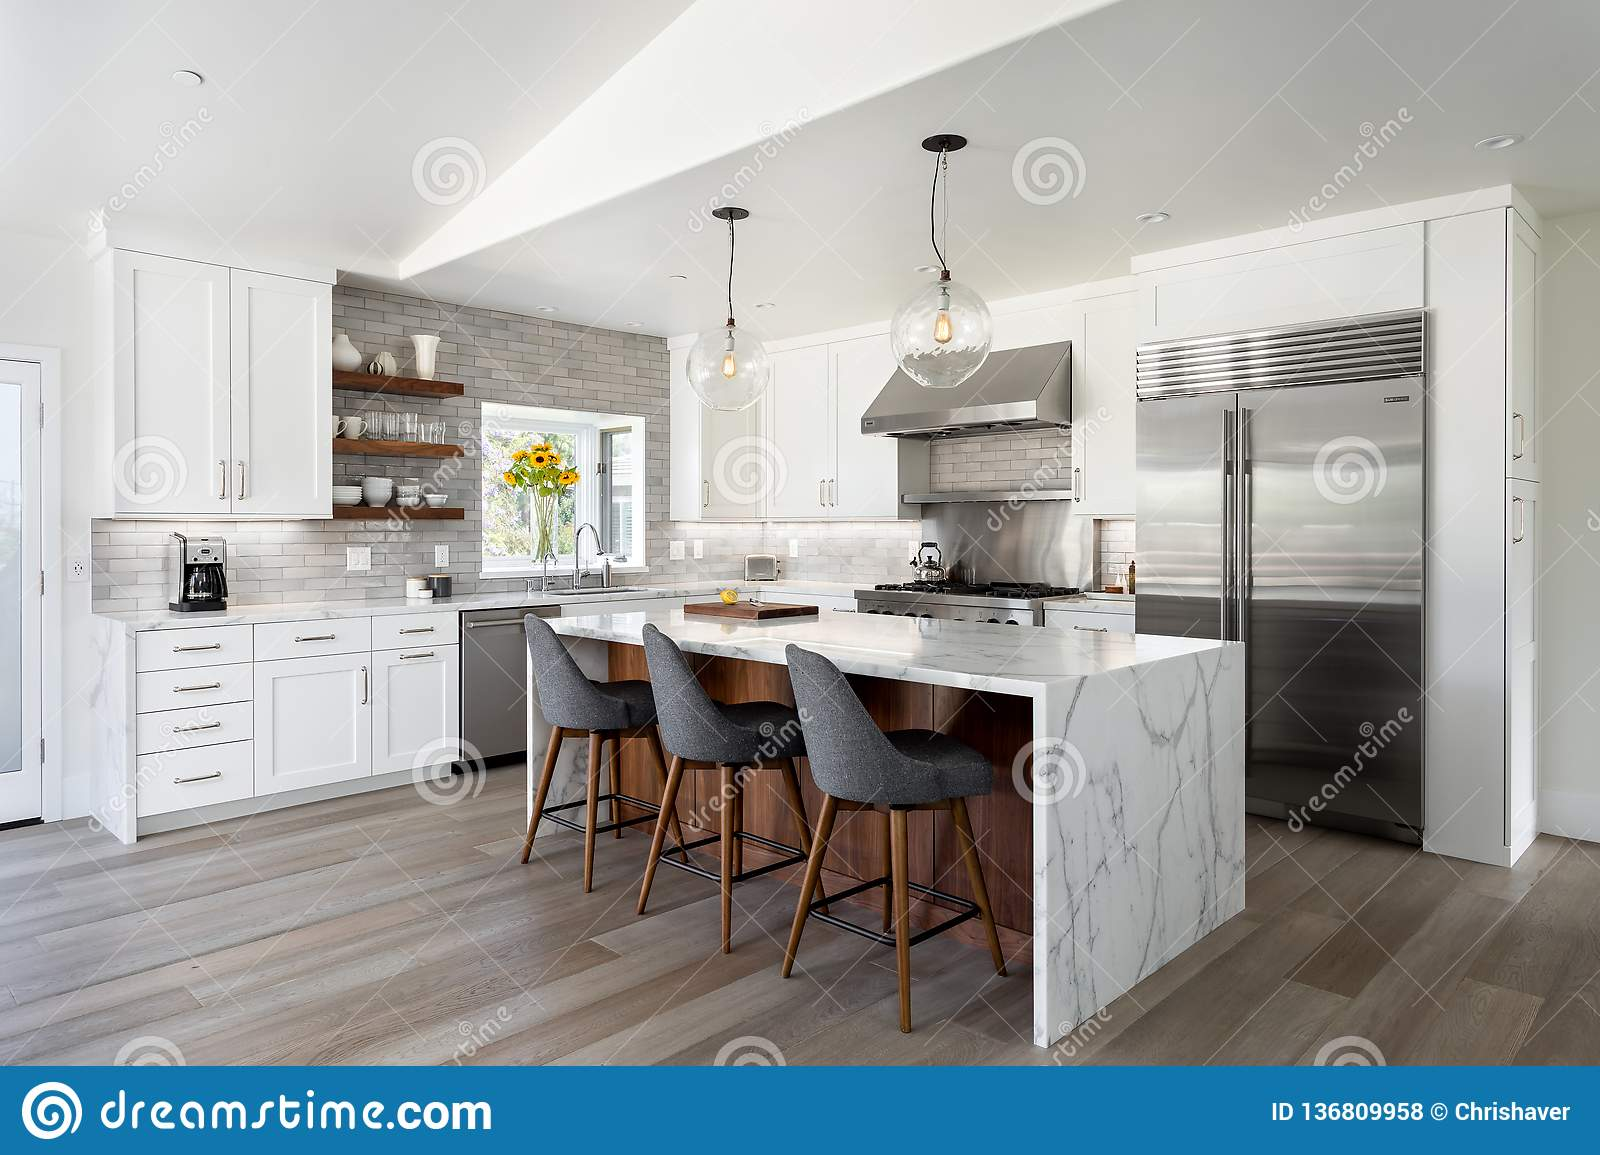 Modern Kitchen Design Home Interior Editorial Stock Photo Image Of Counter Floor 136809958,What Goes Well With Blue Clothes